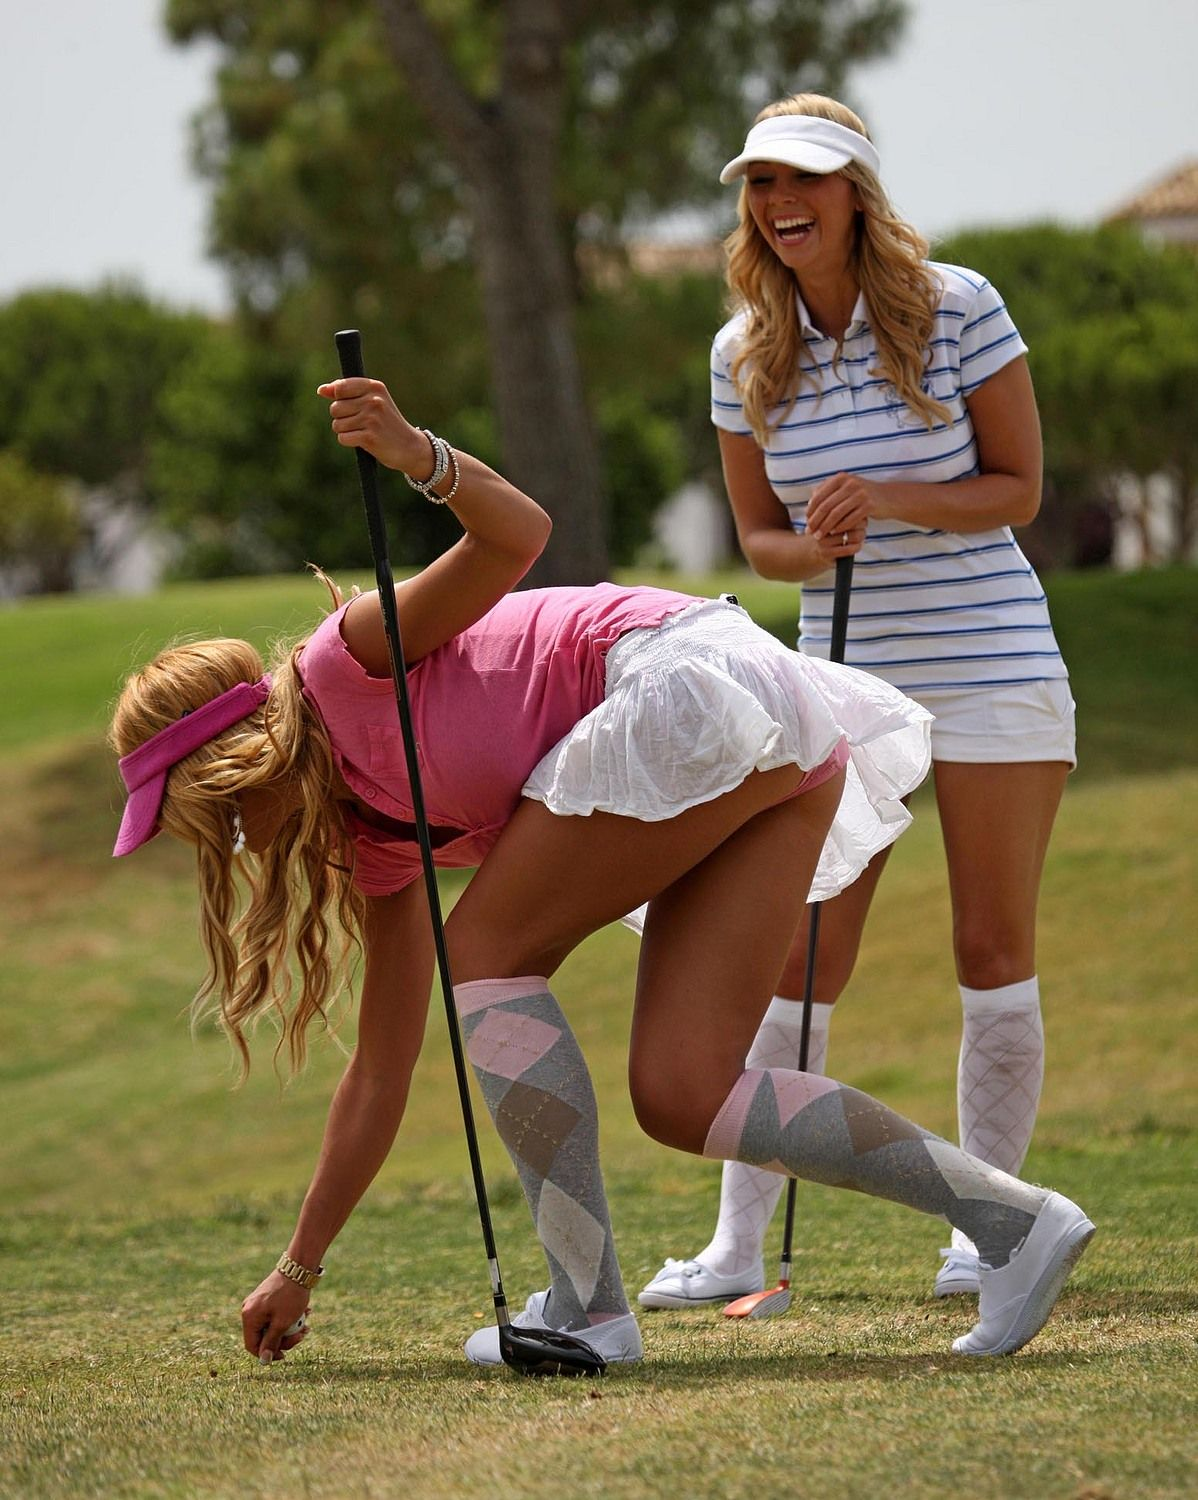 Golf upskirt shots